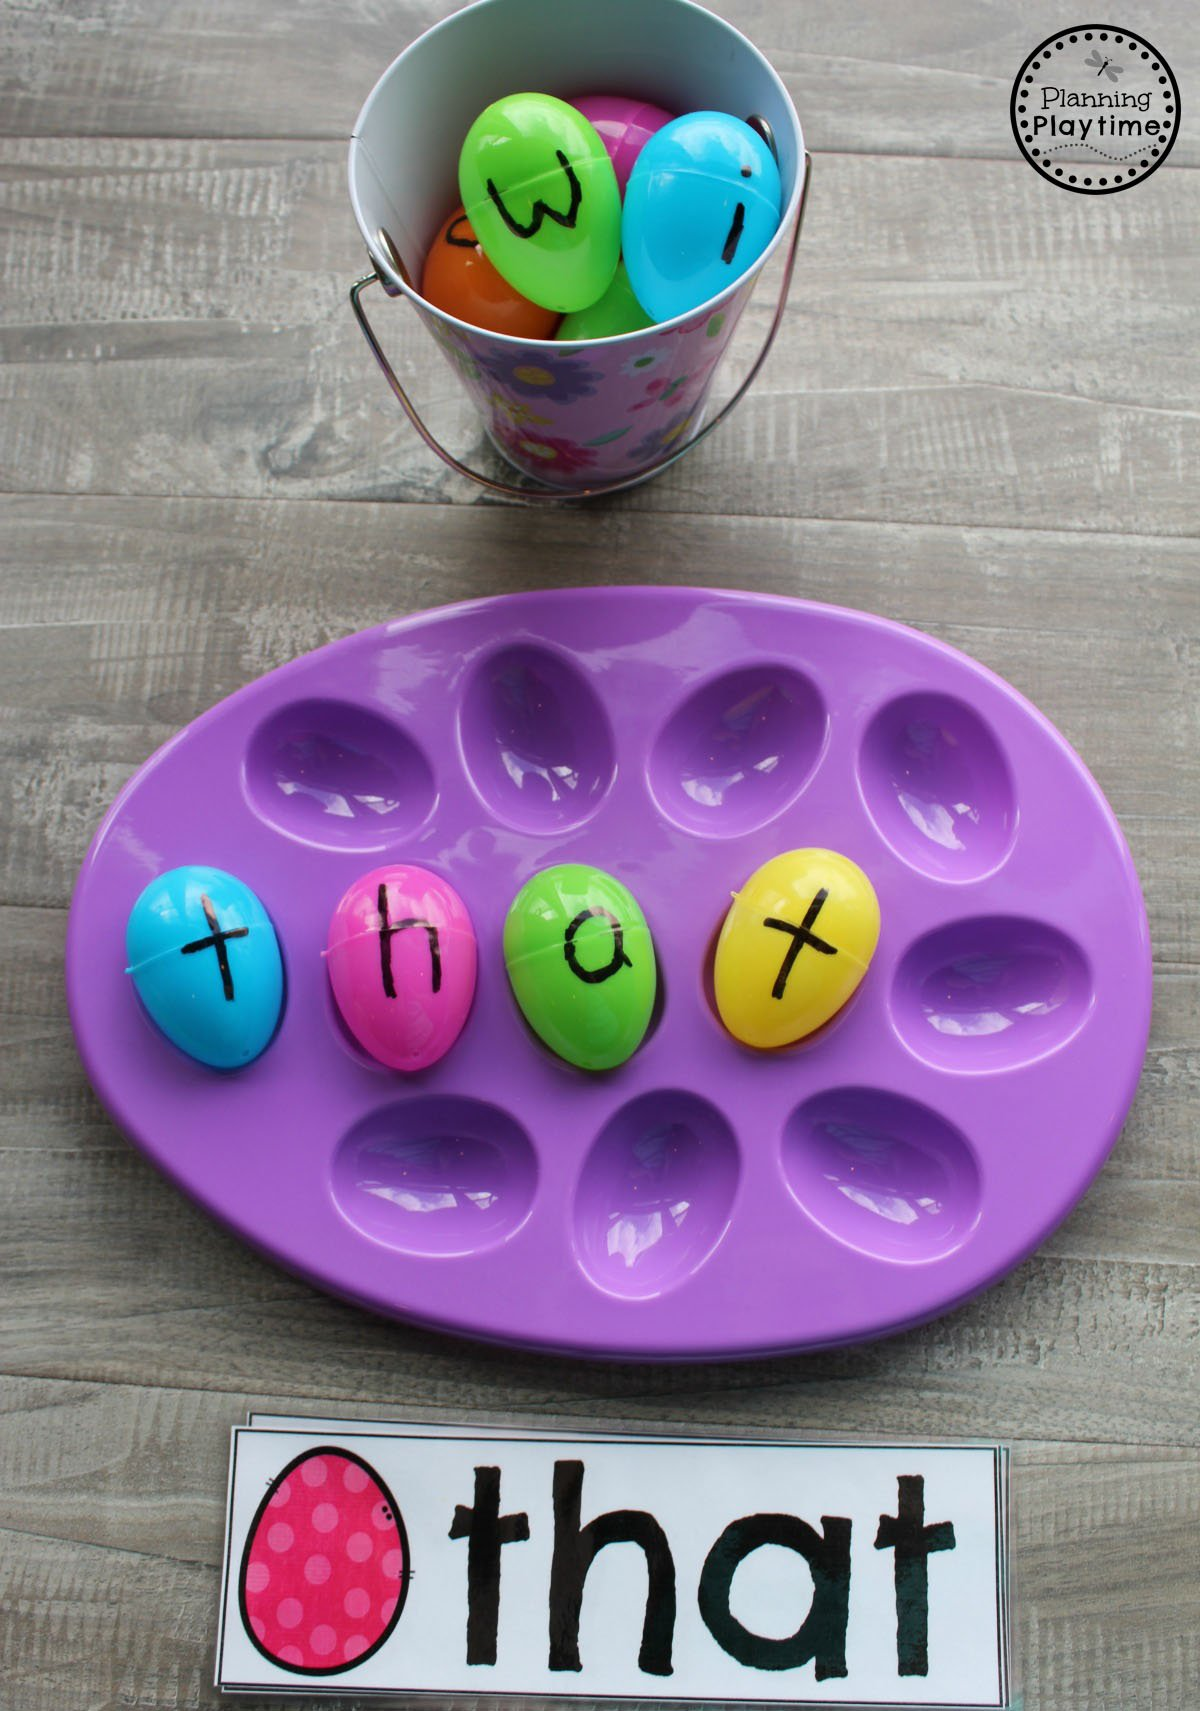 Preschool Sight Words Game for Preschool. #easter #preschool #easteractivities #easterpreschool #planningplaytime #sightwords